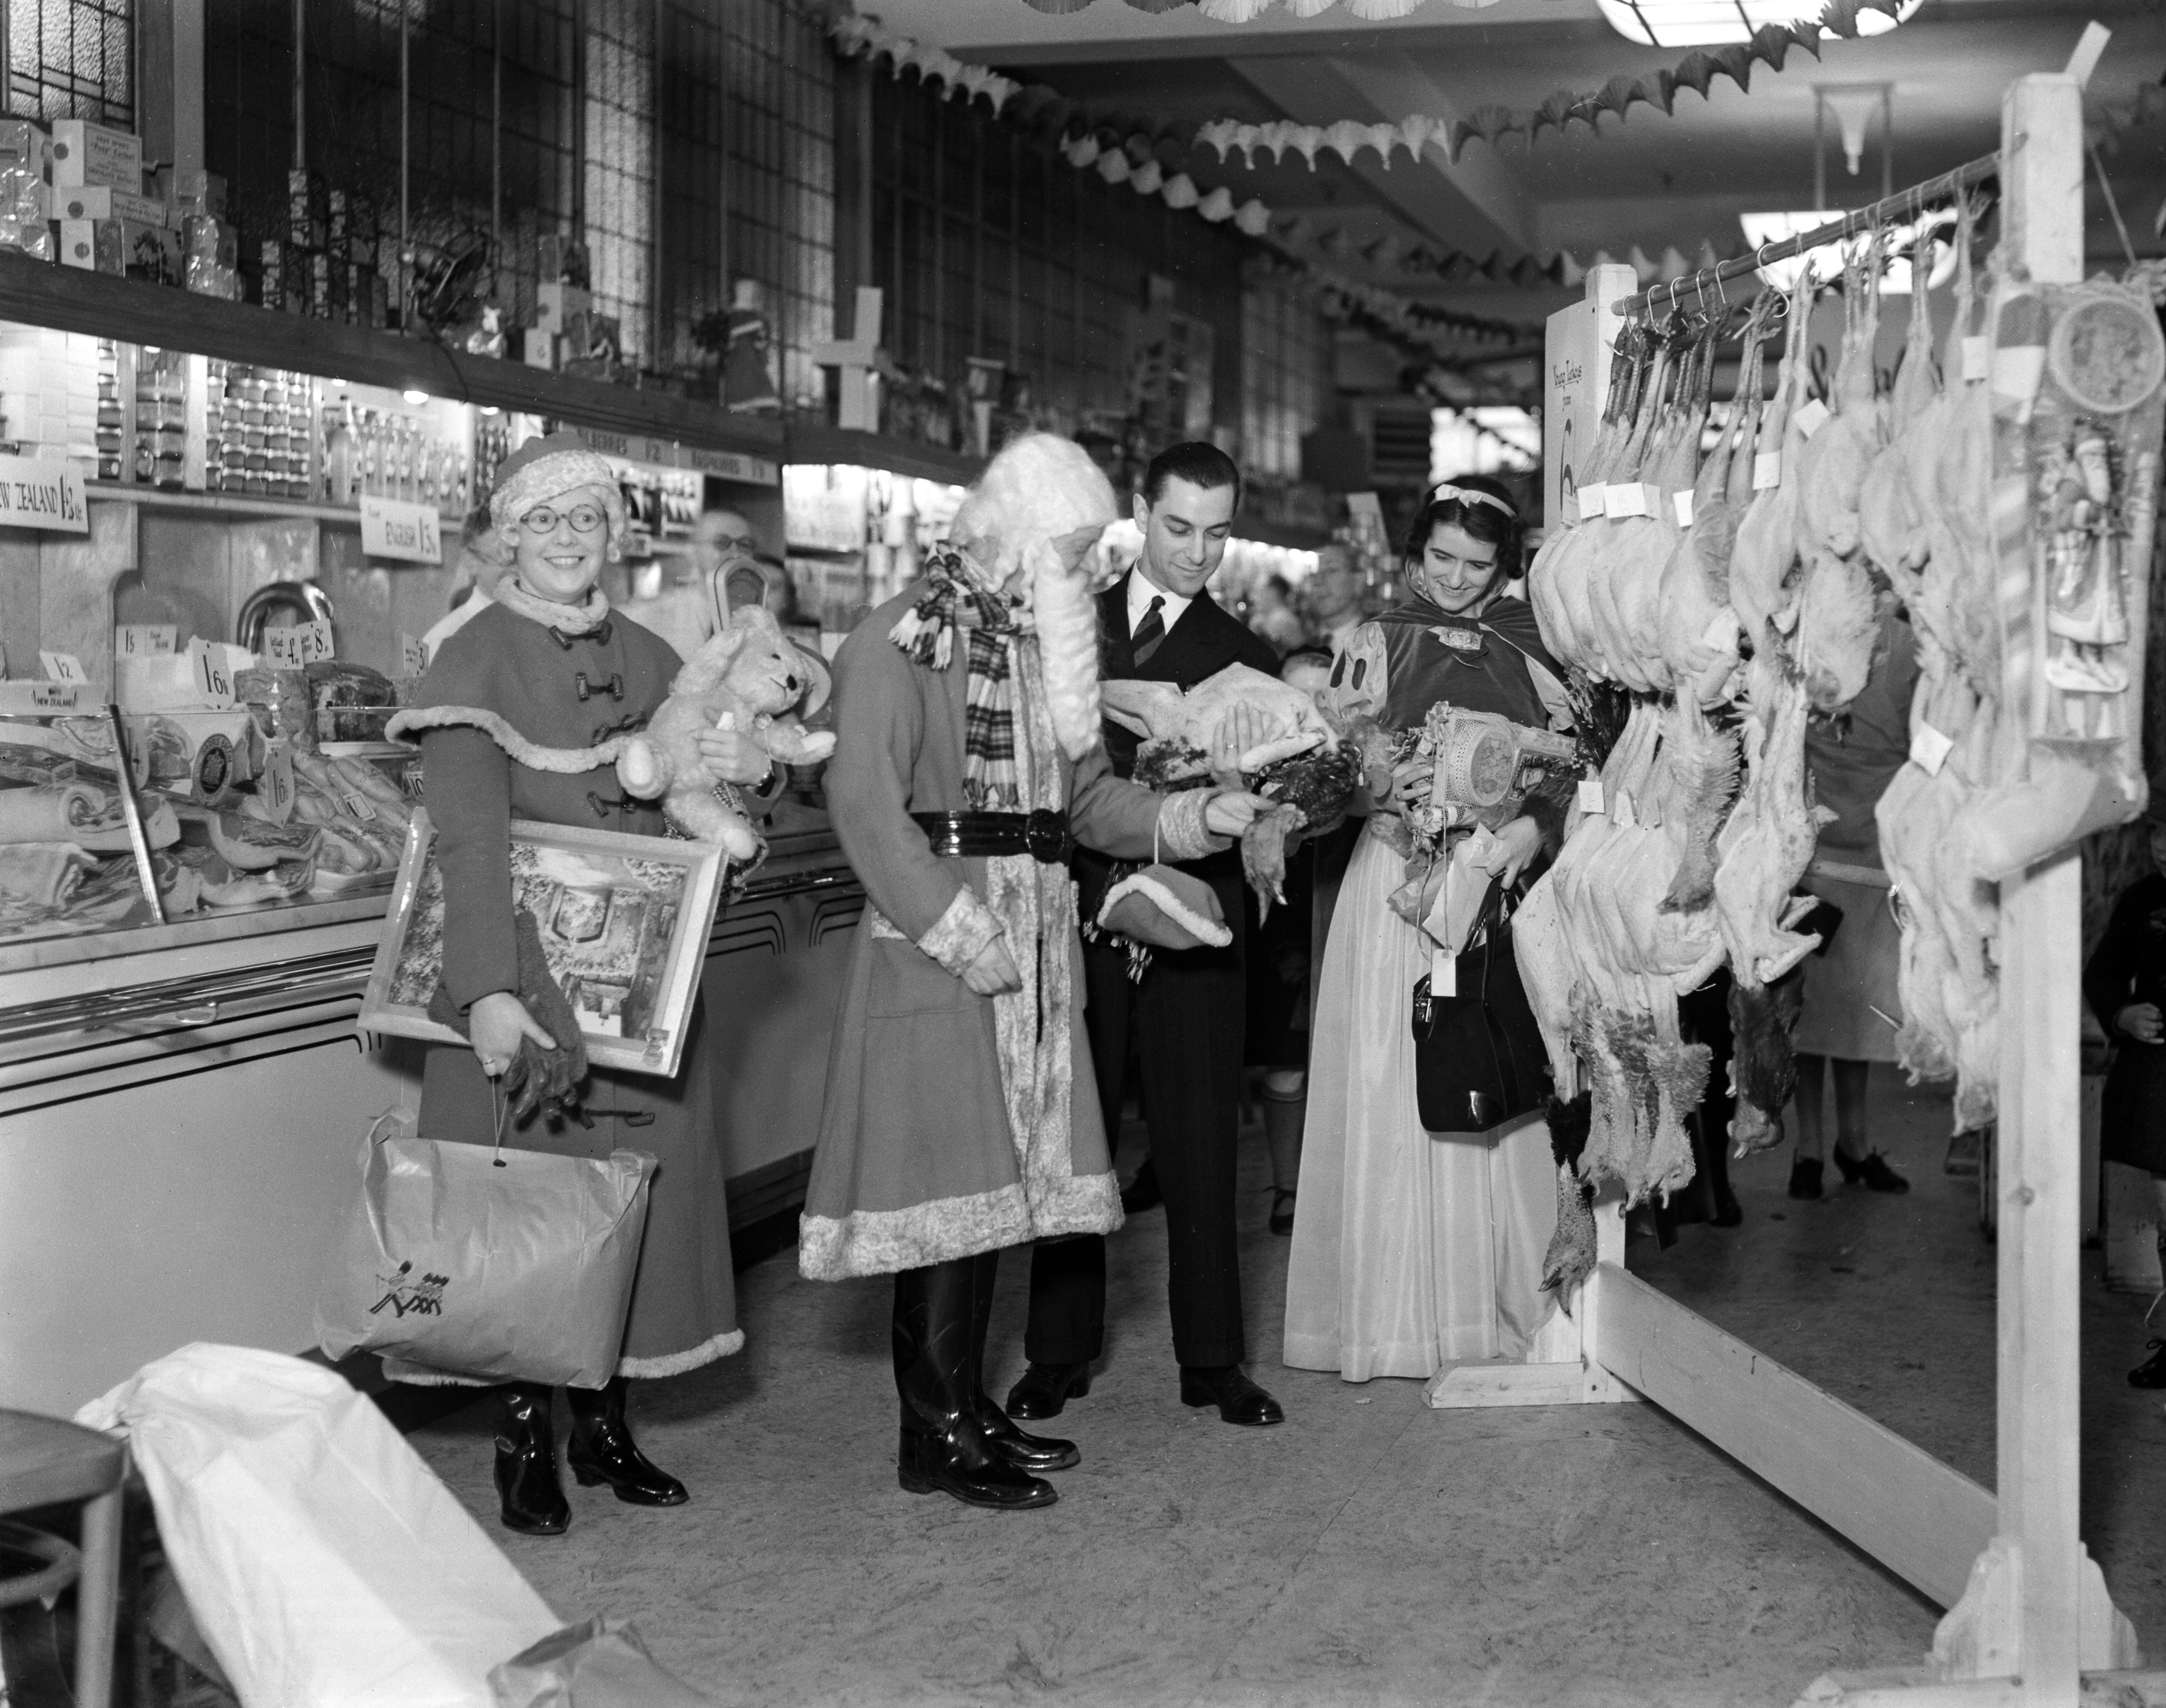 Father Christmas in the Food Hall at Busbys' department store, Manningham Lane, Bradford.